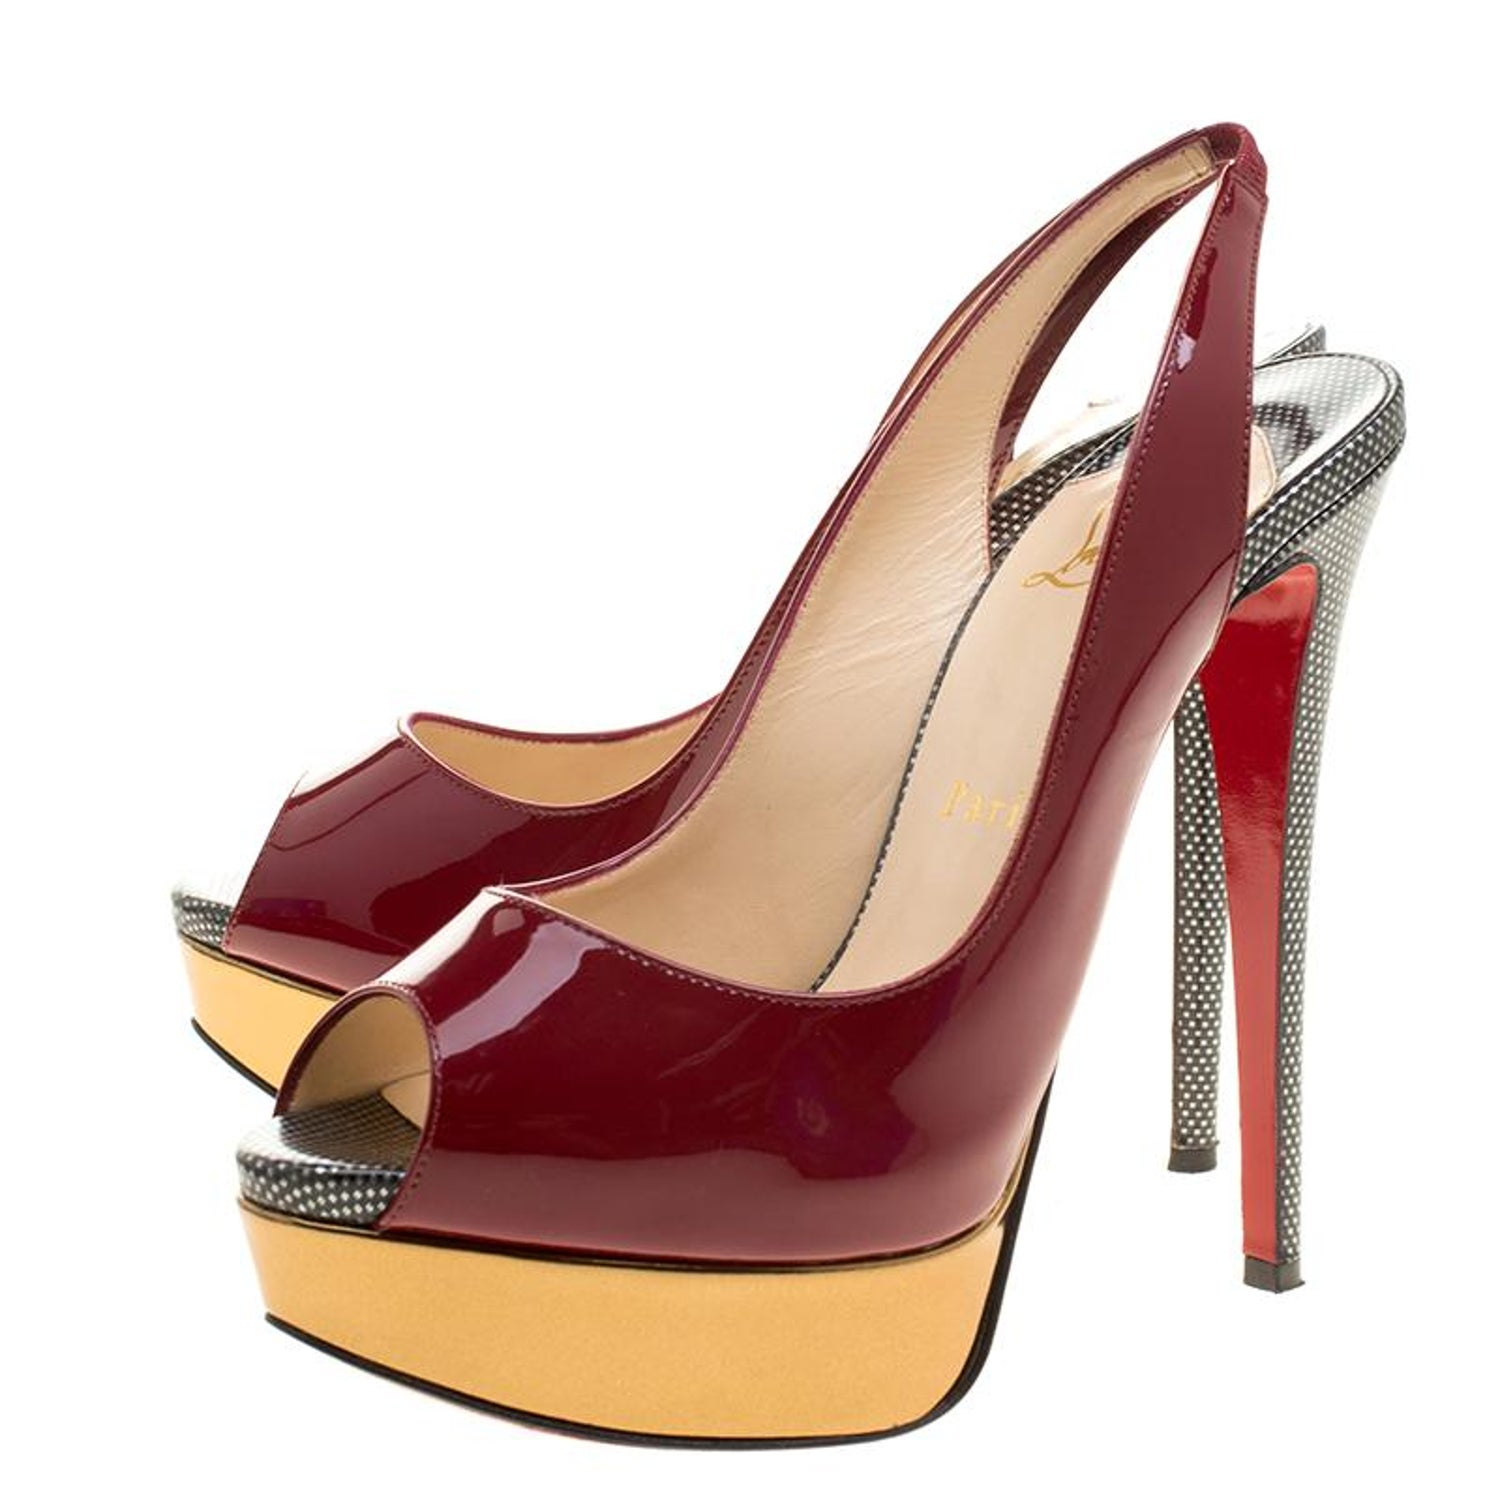 913213d81 Christian Louboutin Two Tone Patent Leather Lady Peep Toe Slingback Sandals  Size For Sale at 1stdibs